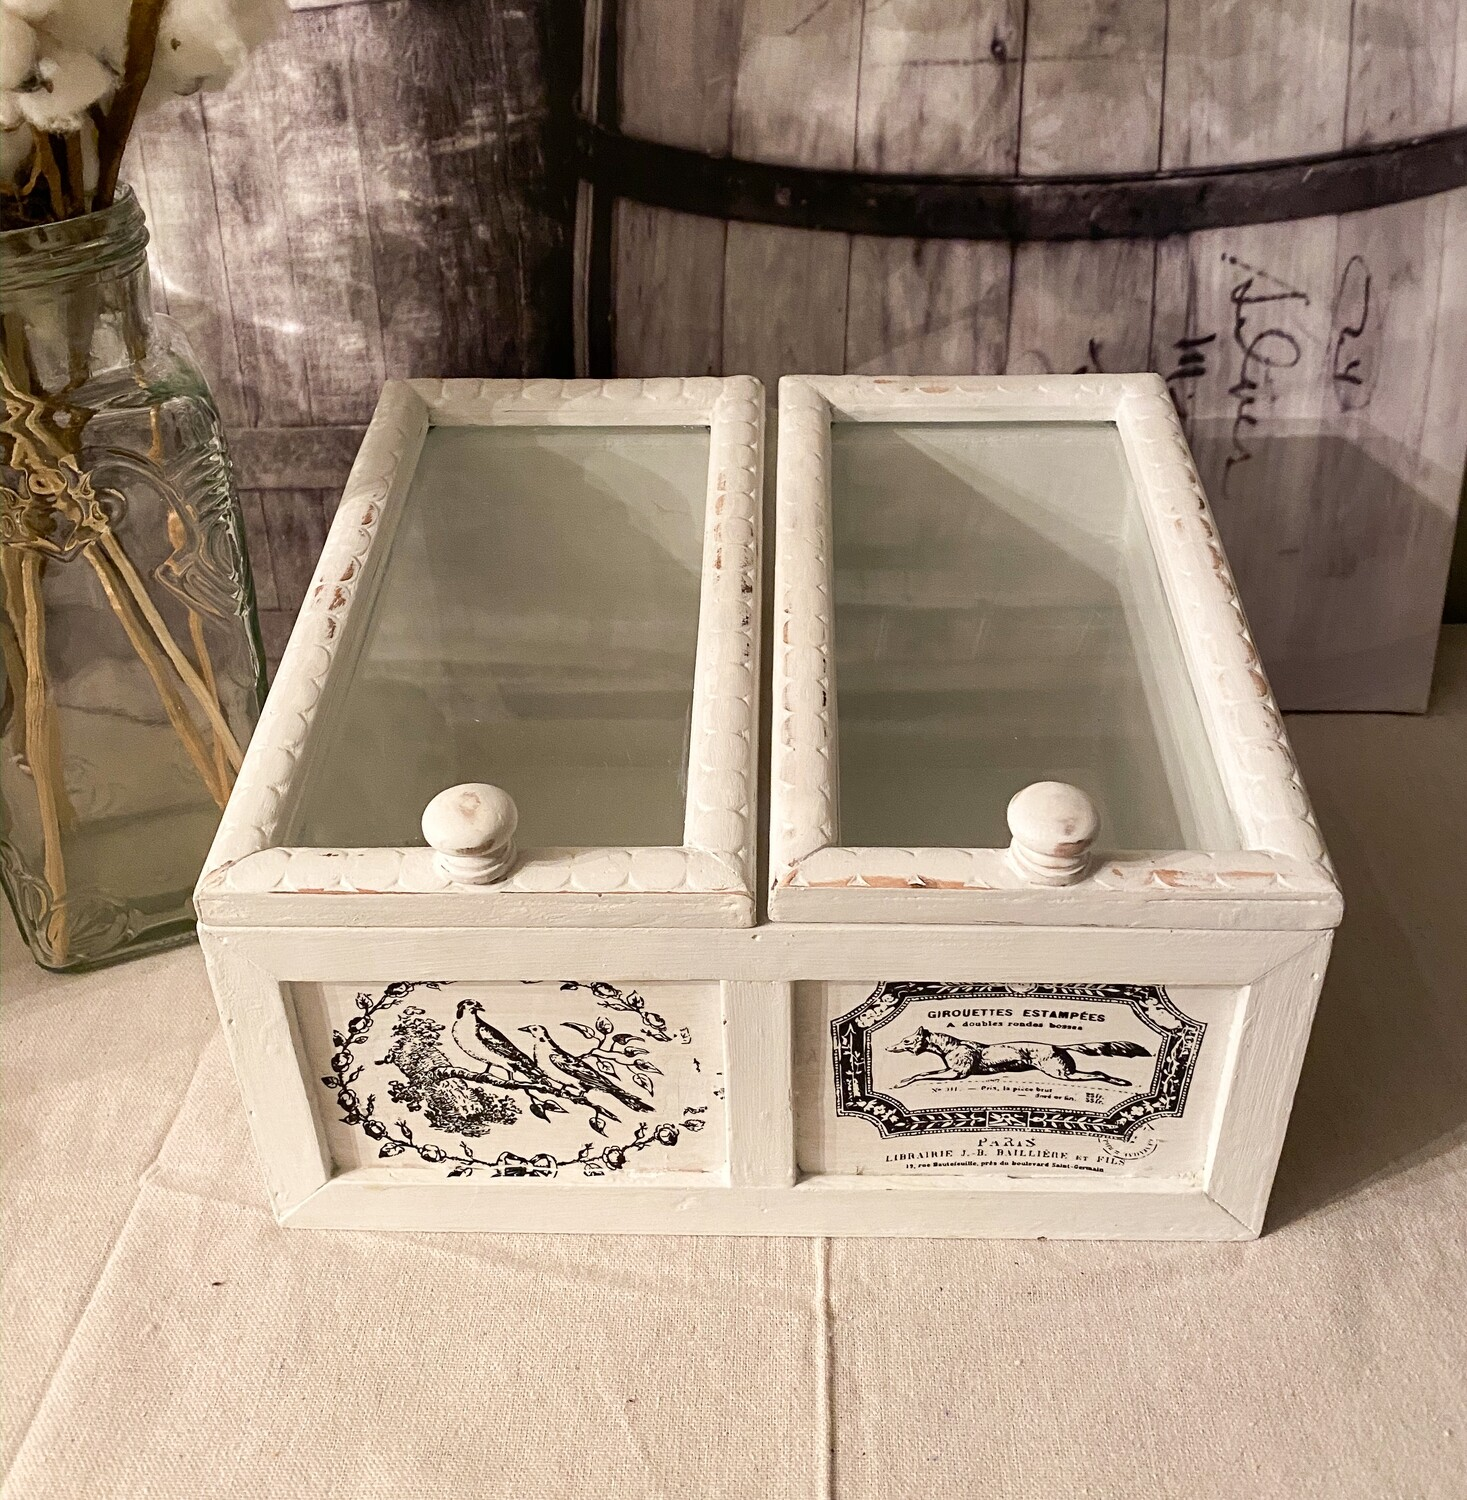 Two Compartment Countertop Wood Storage Bin with Glass Doors